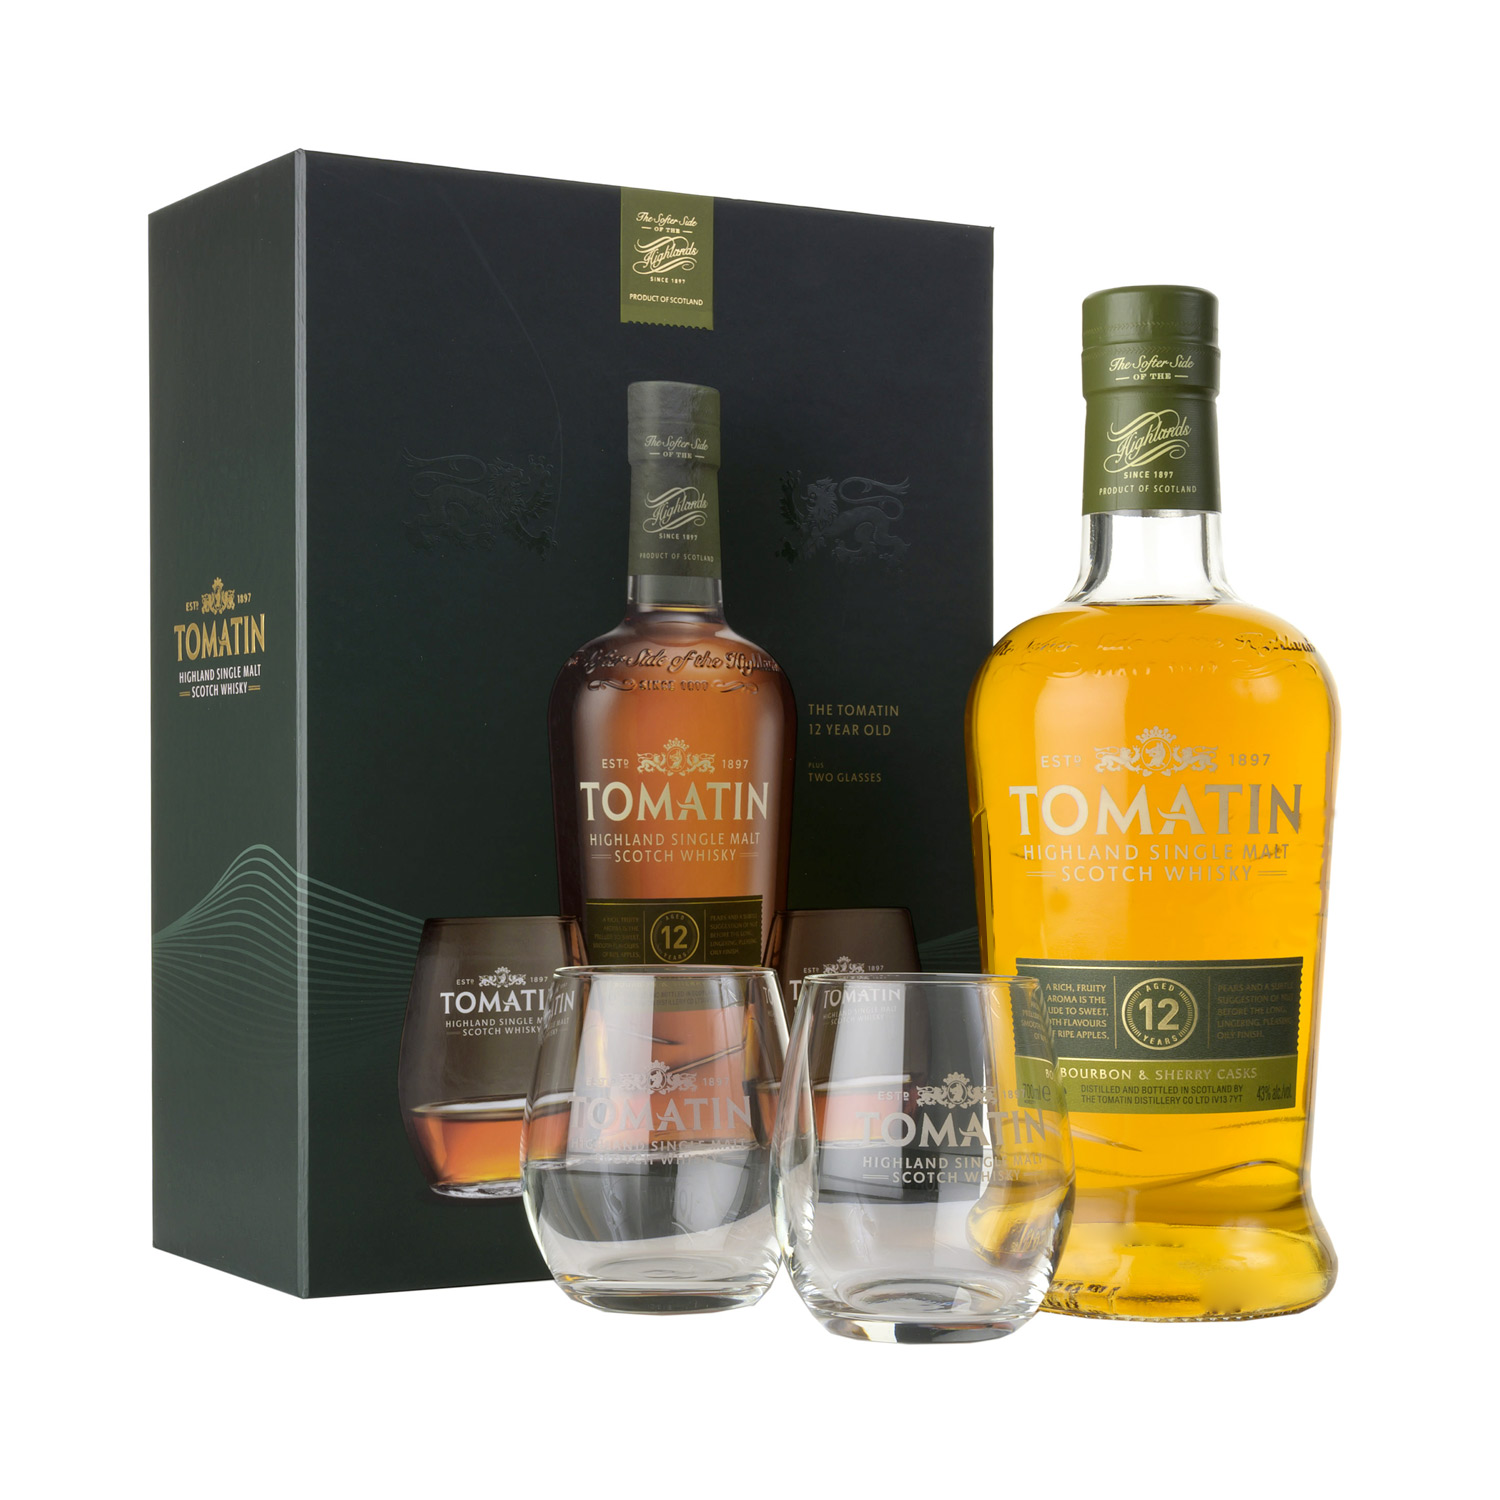 Coffret Whisky - Tomatin 12 y + 2 verres - Ecosse - Single Malt - Non Tourbé - 70 cl - 43°